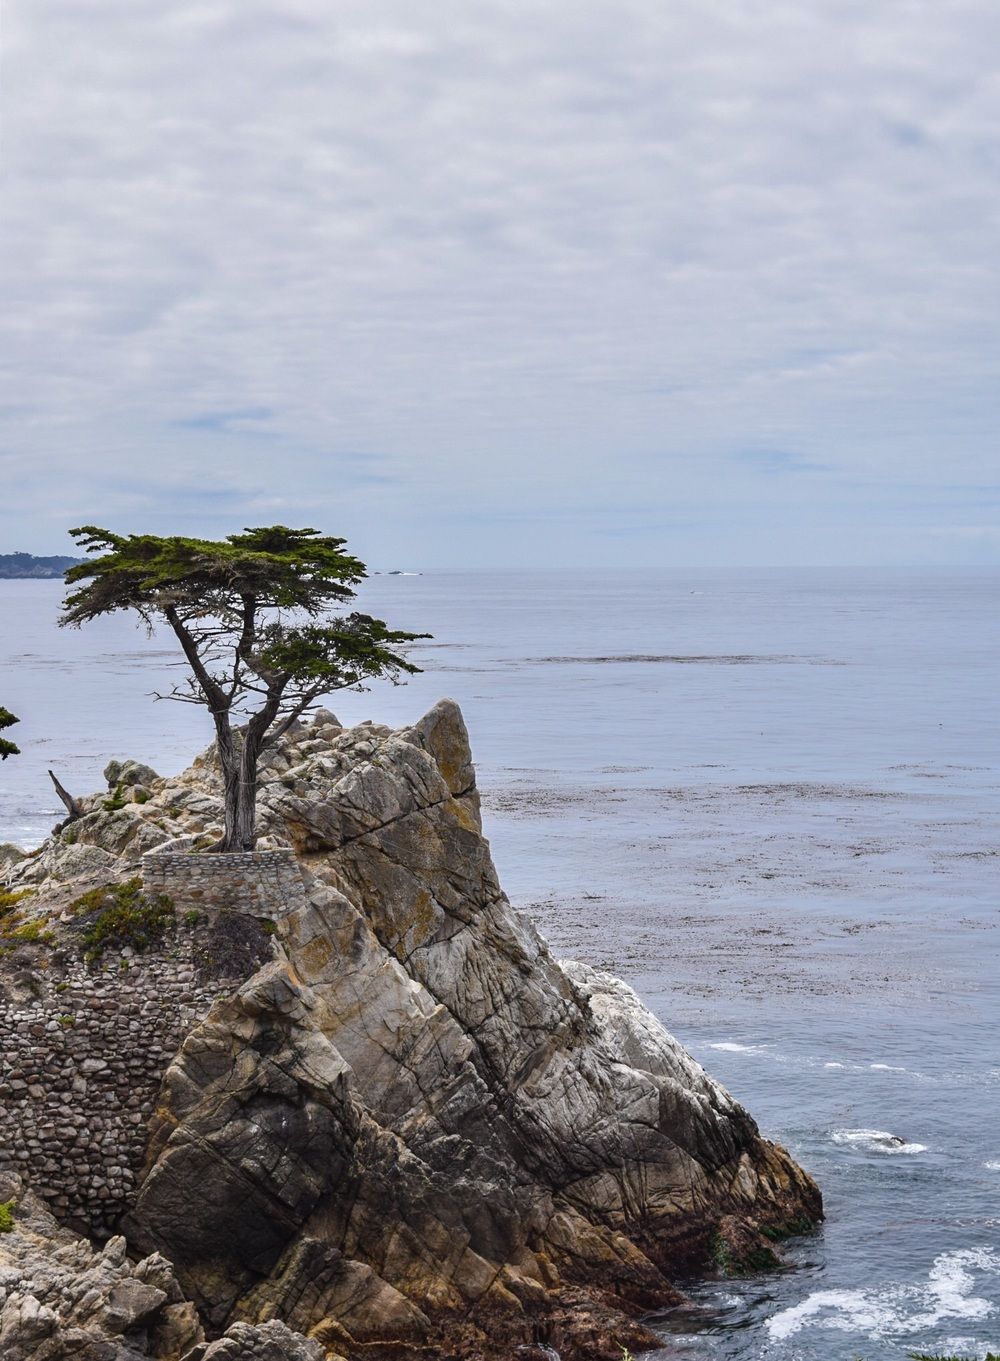 Pebble Beach - The Lone Cypress, more than 250 years old and the only tree in the world that is trademarked.